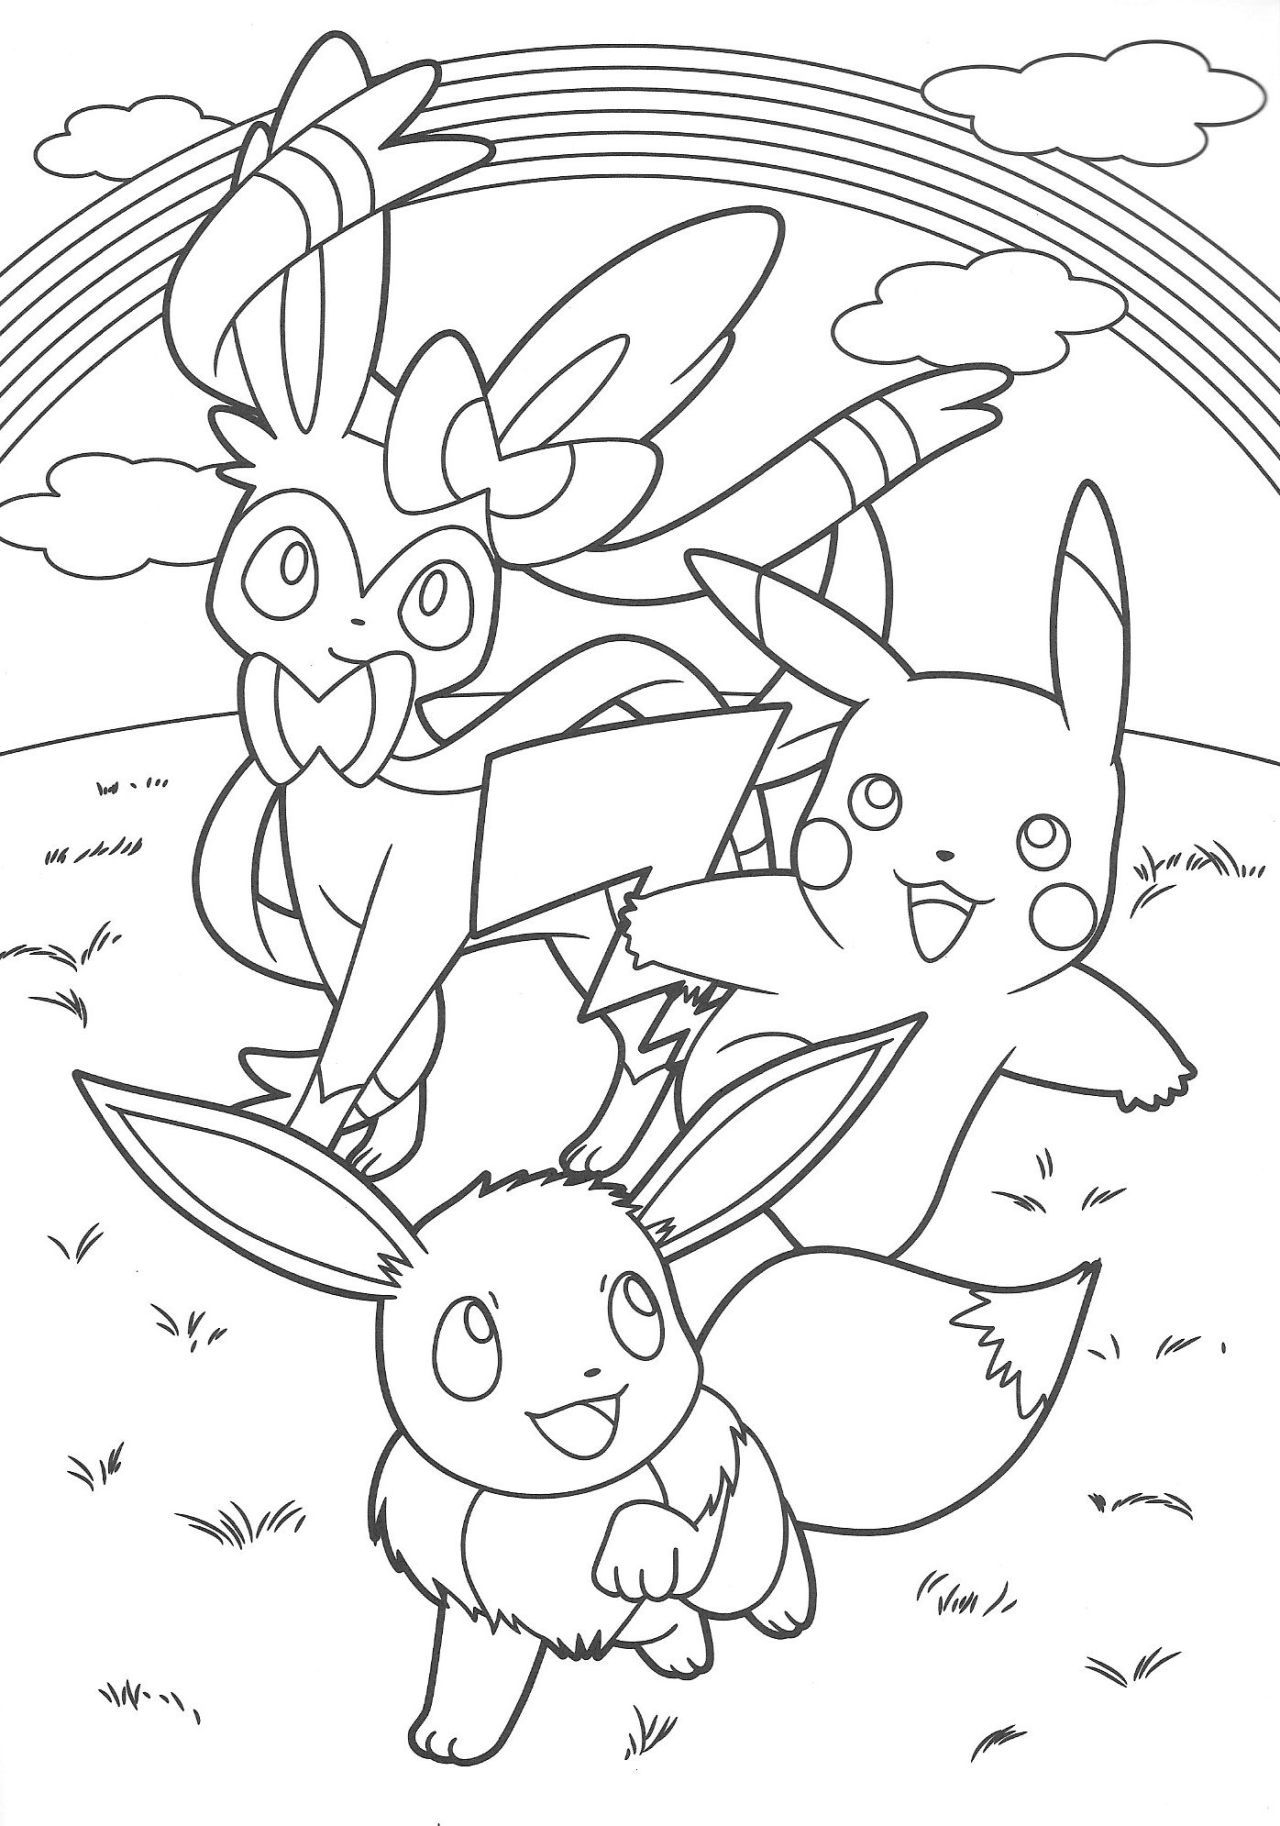 Pokemon Scans From Pacificpikachu S Collection Photo Pokemon Coloring Pages Pokemon Coloring Pokemon Coloring Sheets